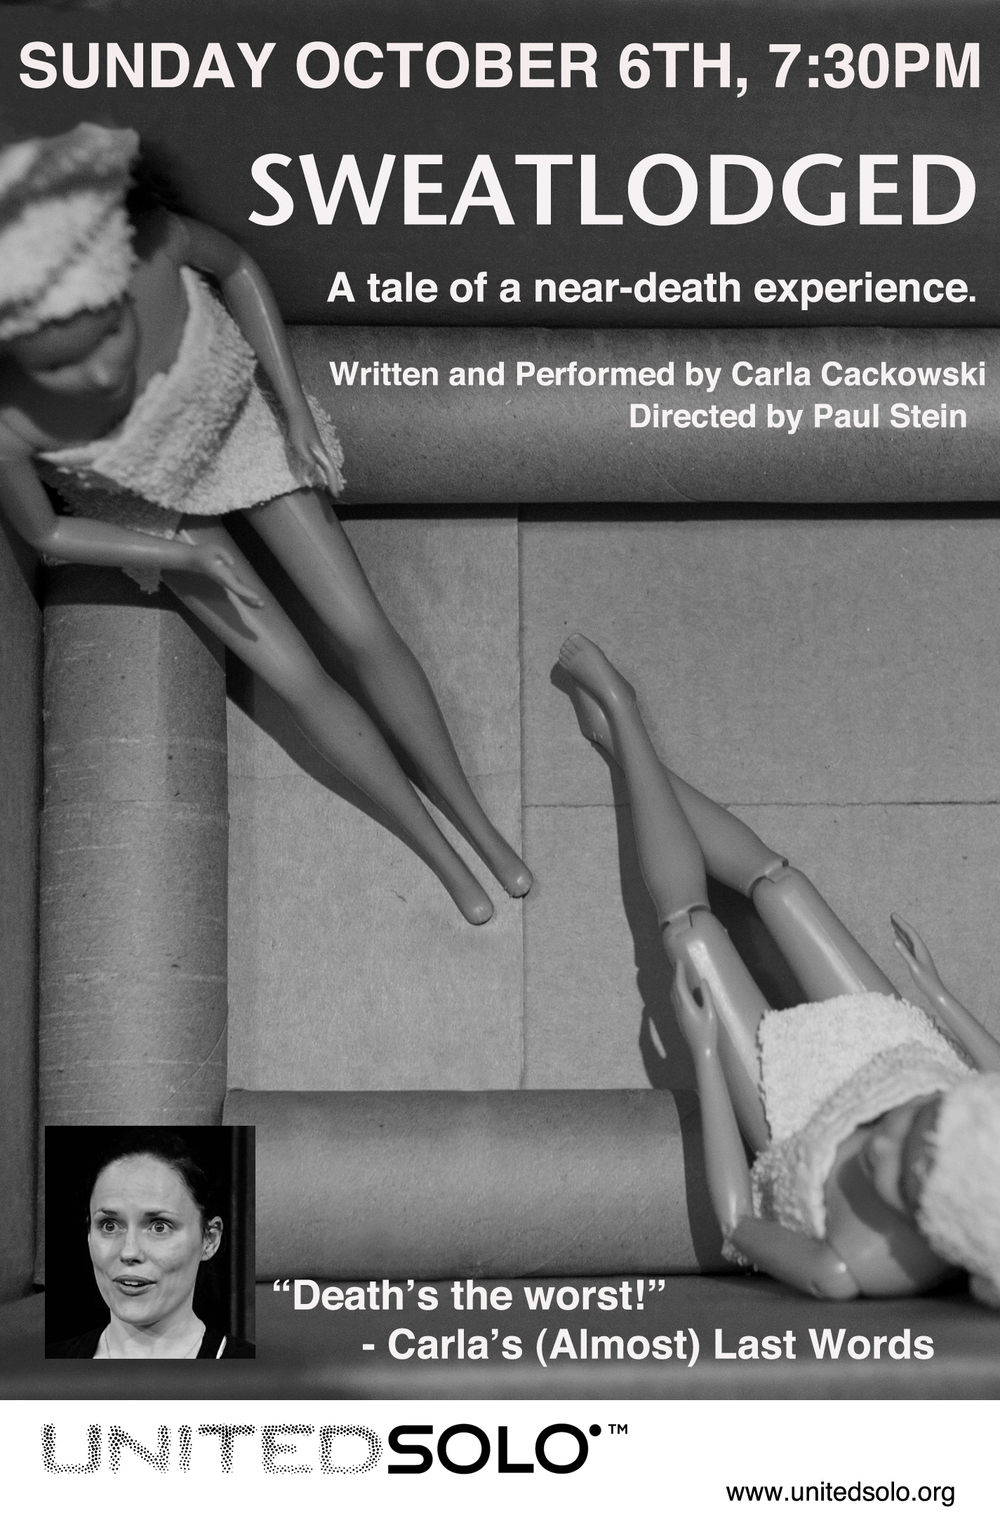 UNITED SOLO.FULL PAGE AD.jpg